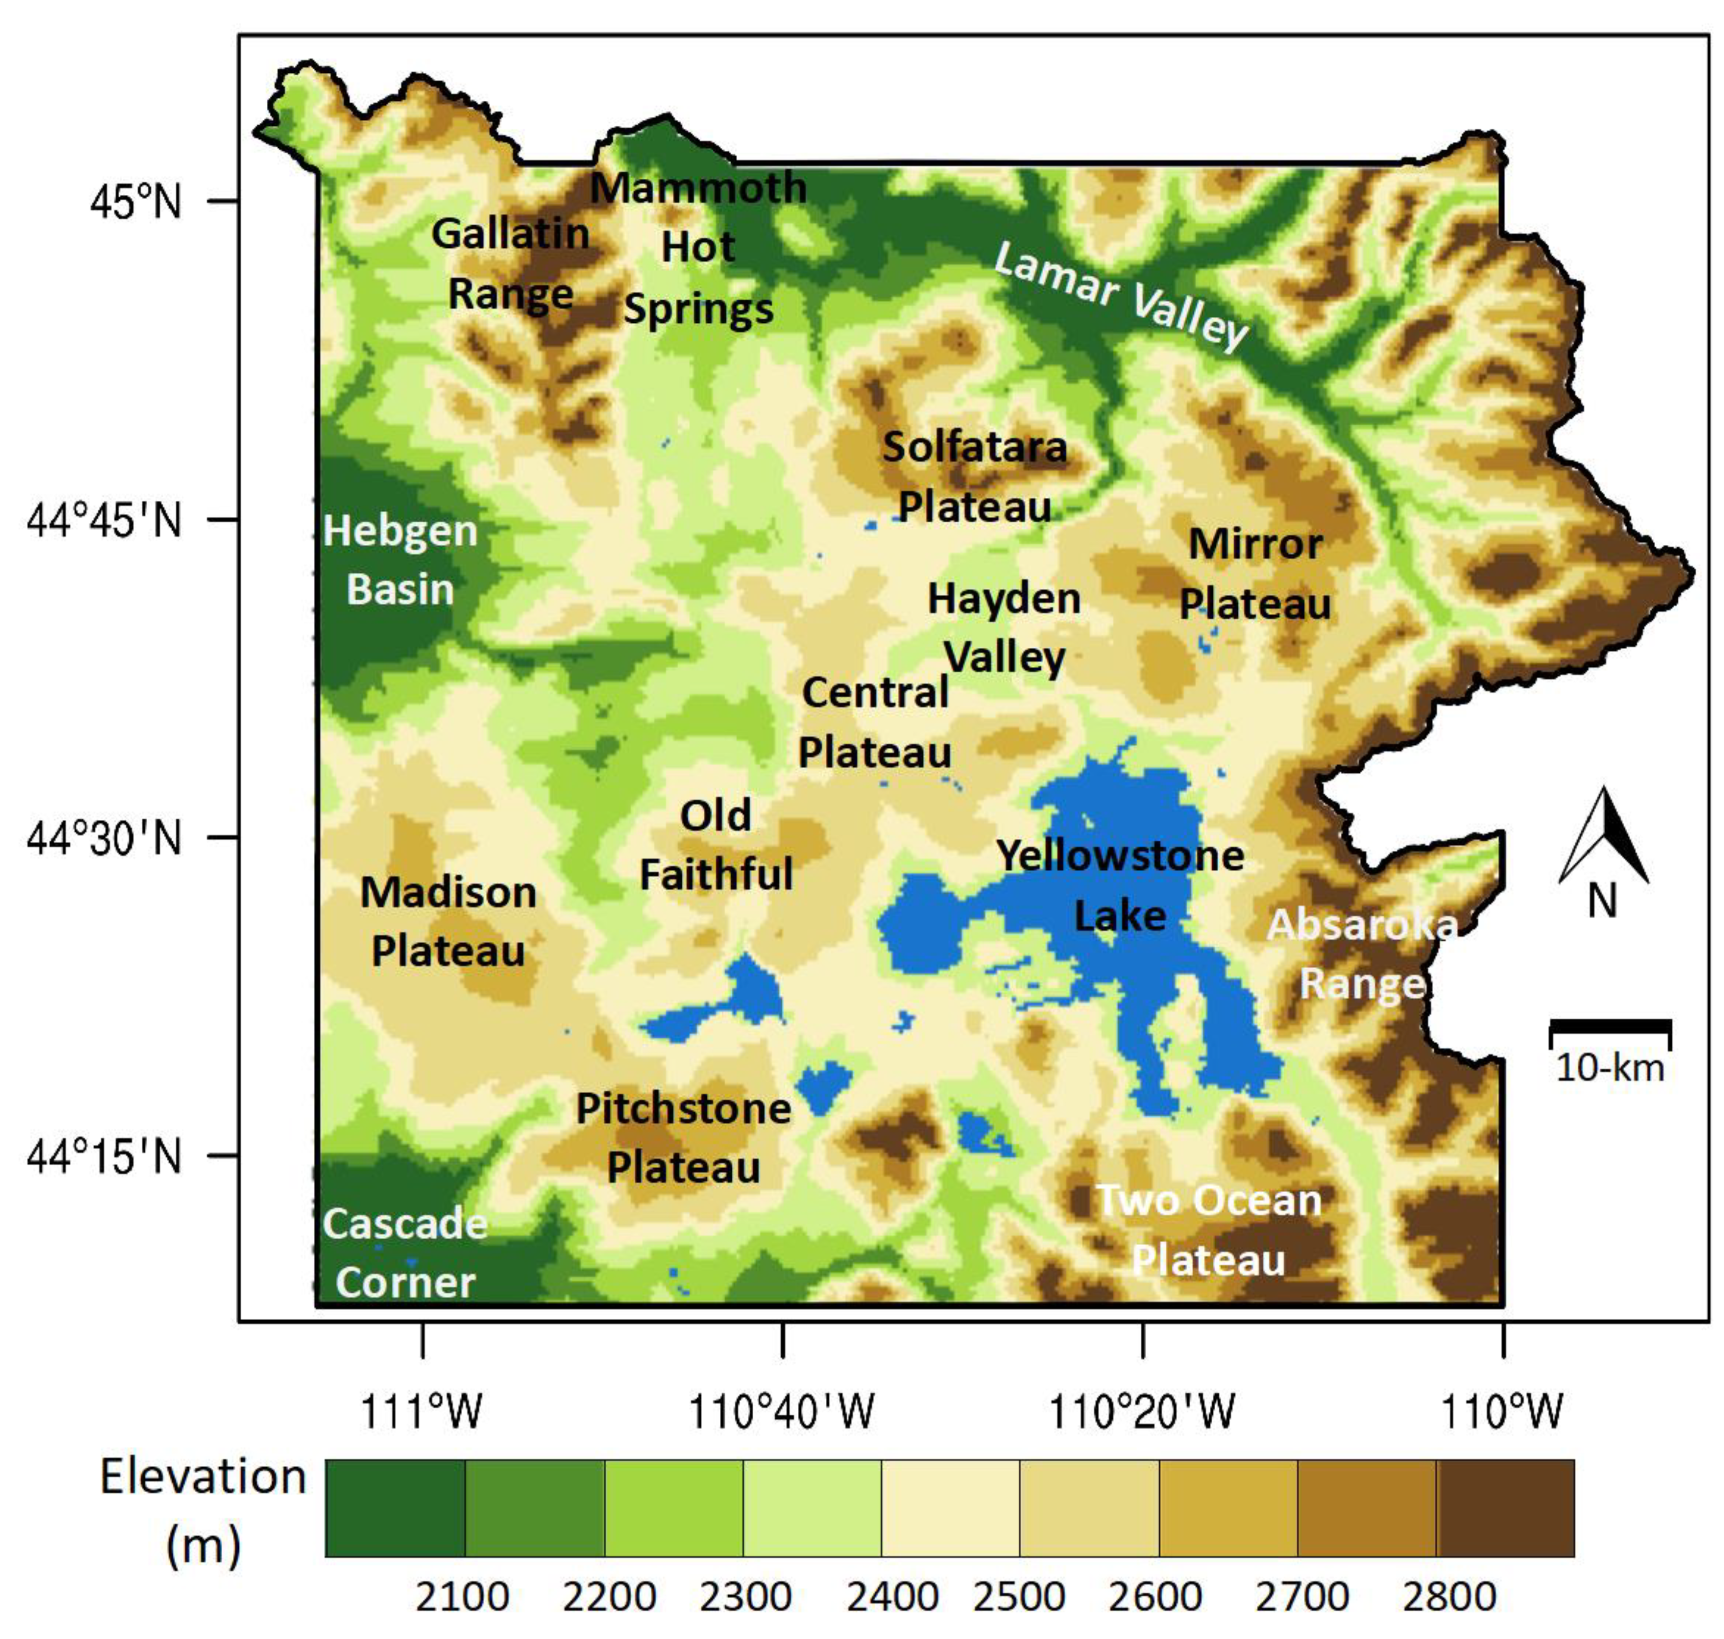 Yellowstone National Park Elevation Map on houston elevation map, mount fuji elevation map, united states elevation map, machu picchu elevation map, sequoia national park trail map, salt lake city elevation map, grand canyon elevation map, mount mansfield elevation map, yellowstone geyser map, park city elevation map, mount shasta elevation map, new york city elevation map, fremont county elevation map, alabama elevation map, orlando elevation map, delaware elevation map, seattle elevation map, grand canyon national park map, new england elevation map, yellowstone river map,